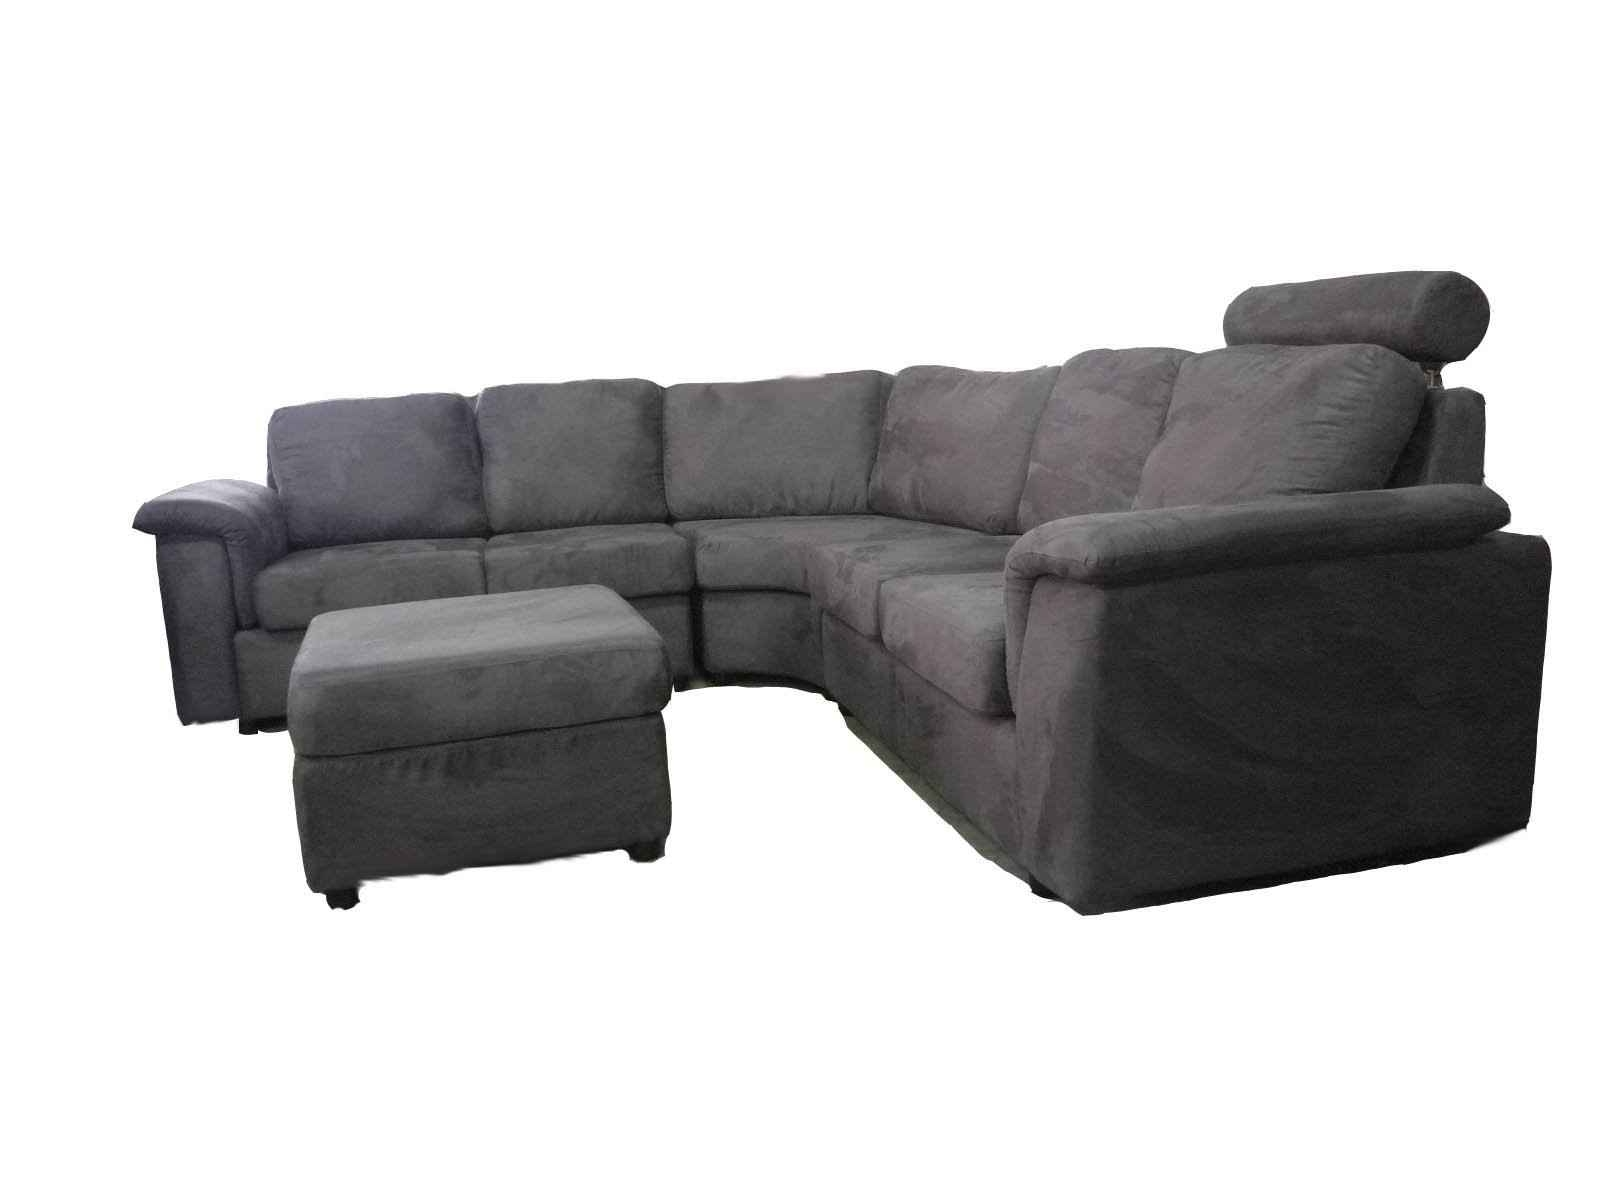 Beautiful Sectional Sofas Ikea 60 For Living Room Sofa Ideas With Inside Fashionable Sectional Sofas At Ikea (View 12 of 15)